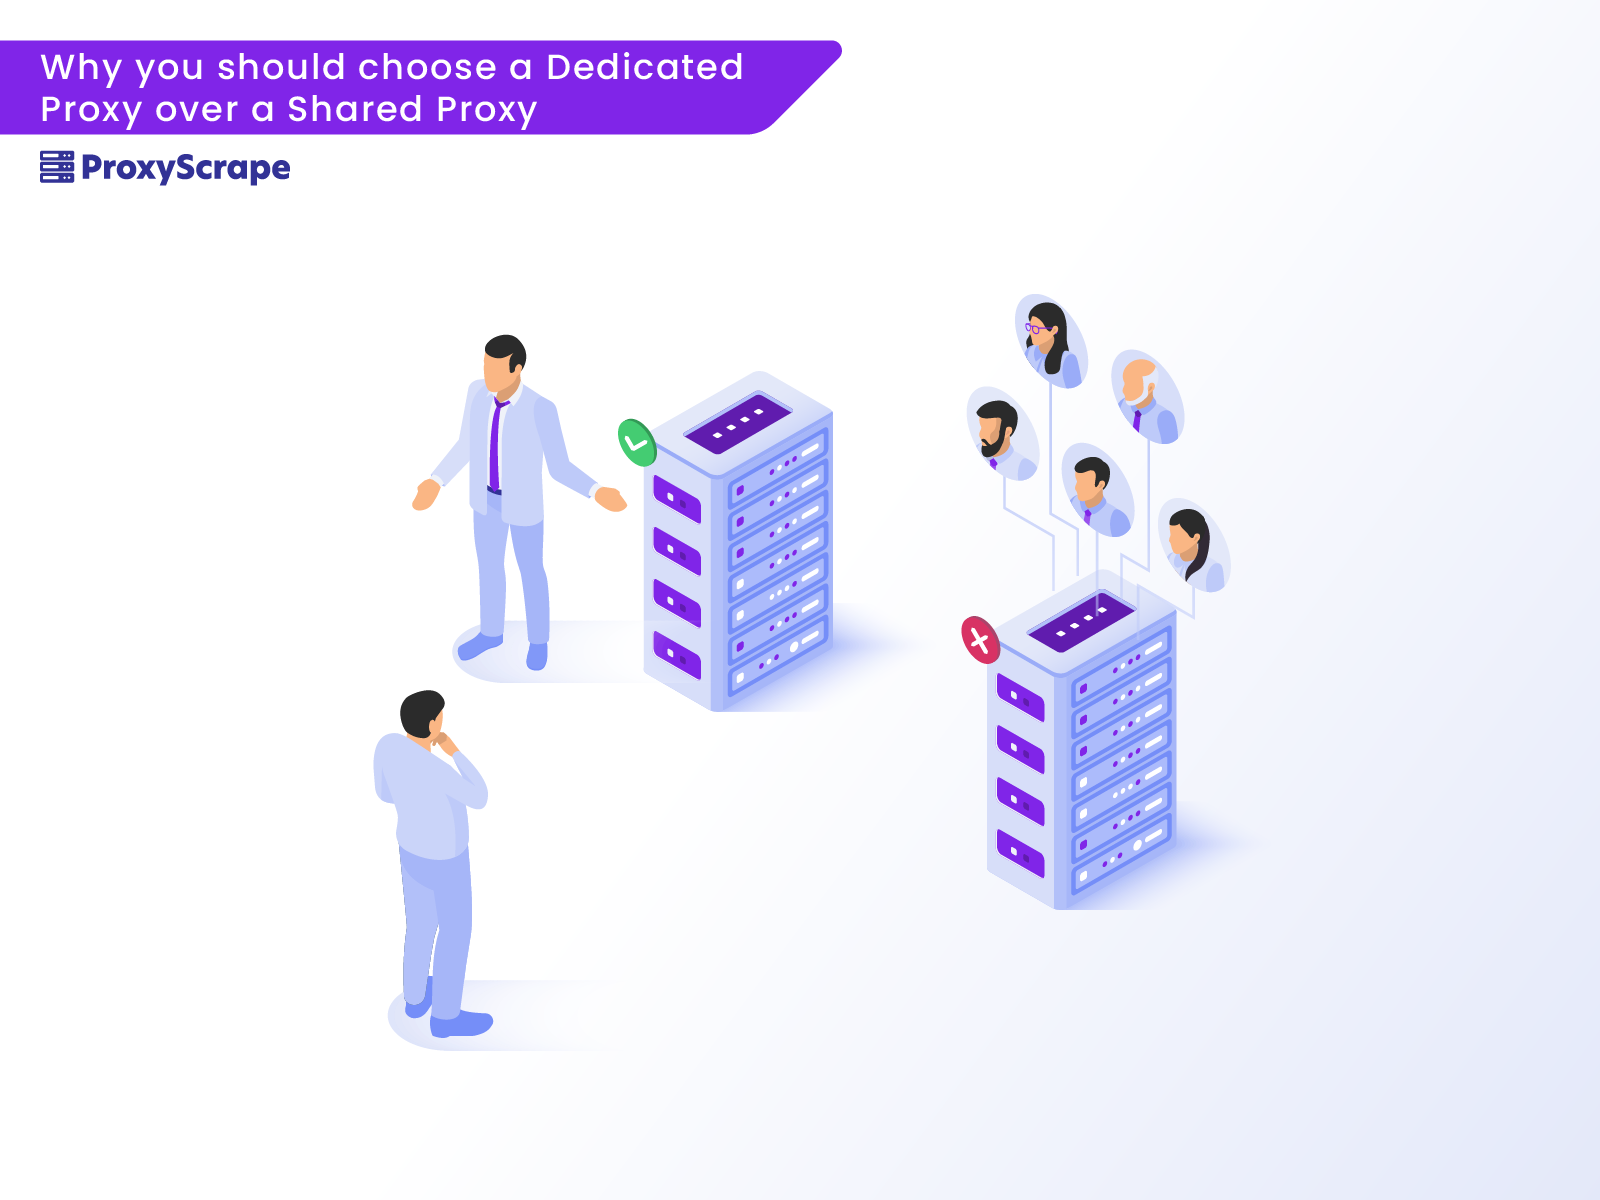 Why you should choose a Dedicated Proxy over a Shared Proxy